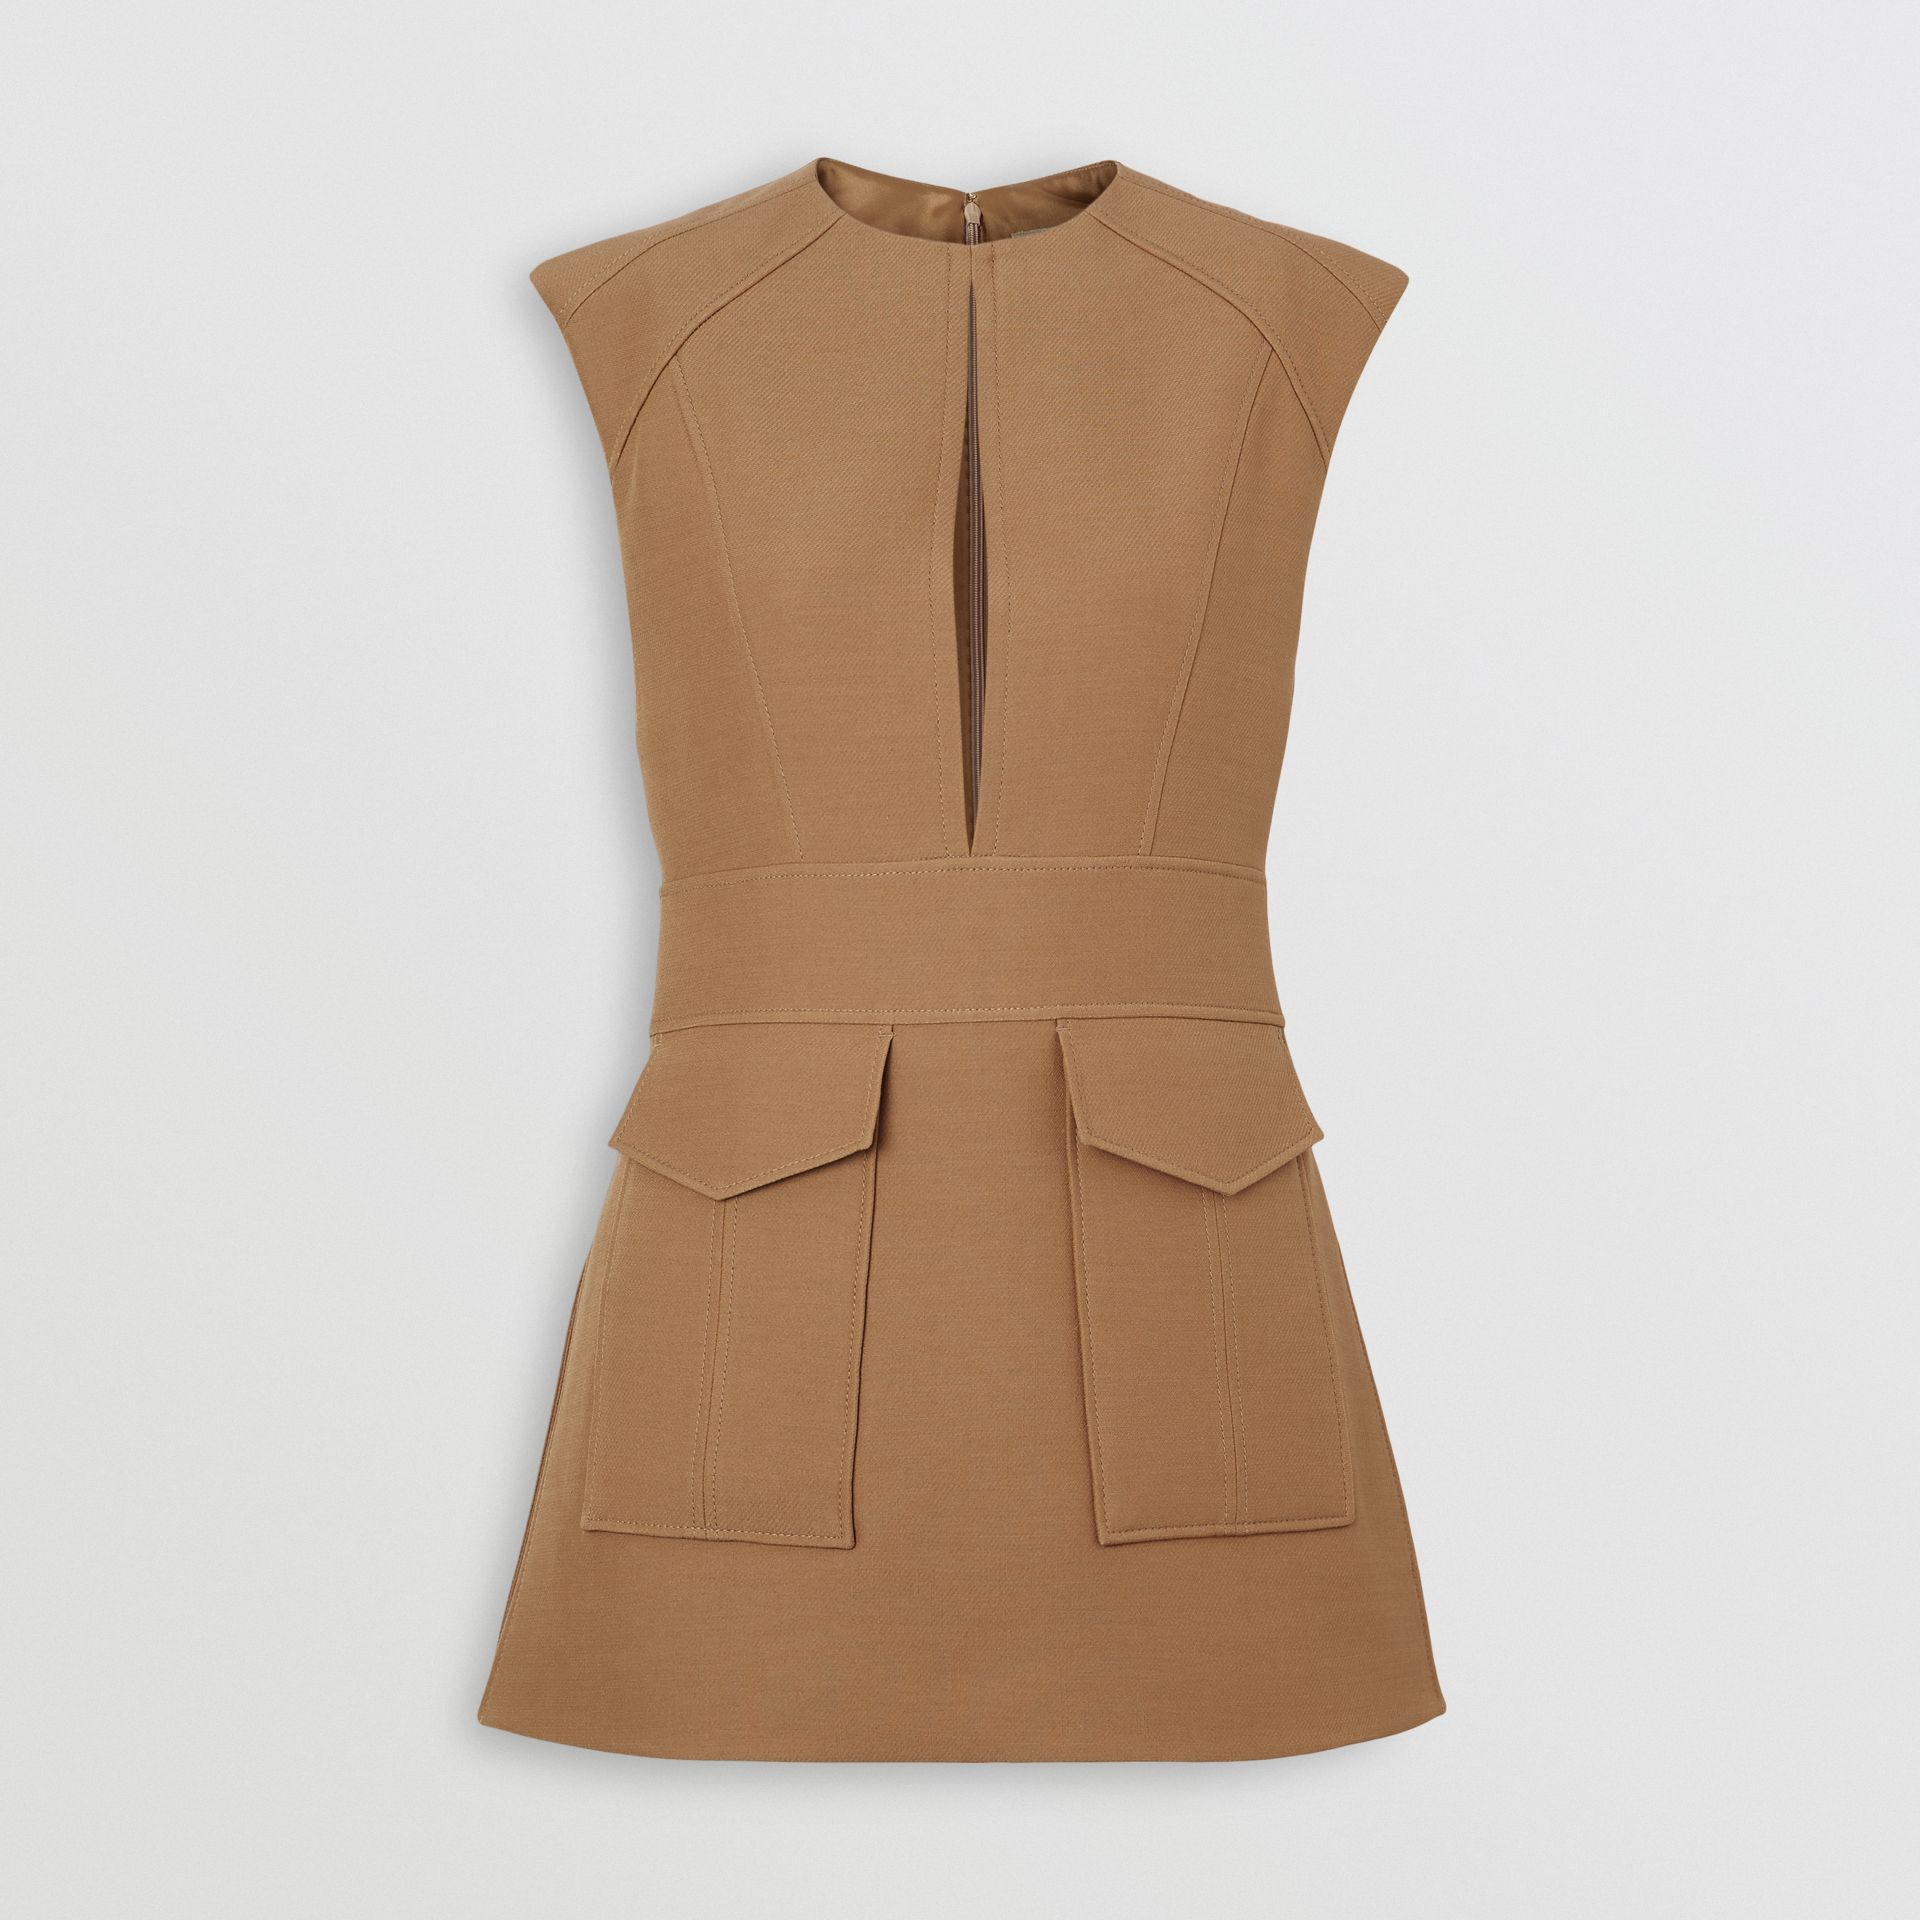 Keyhole Detail Sleeveless Wool Silk Top in Camel - Women | Burberry Australia - gallery image 3